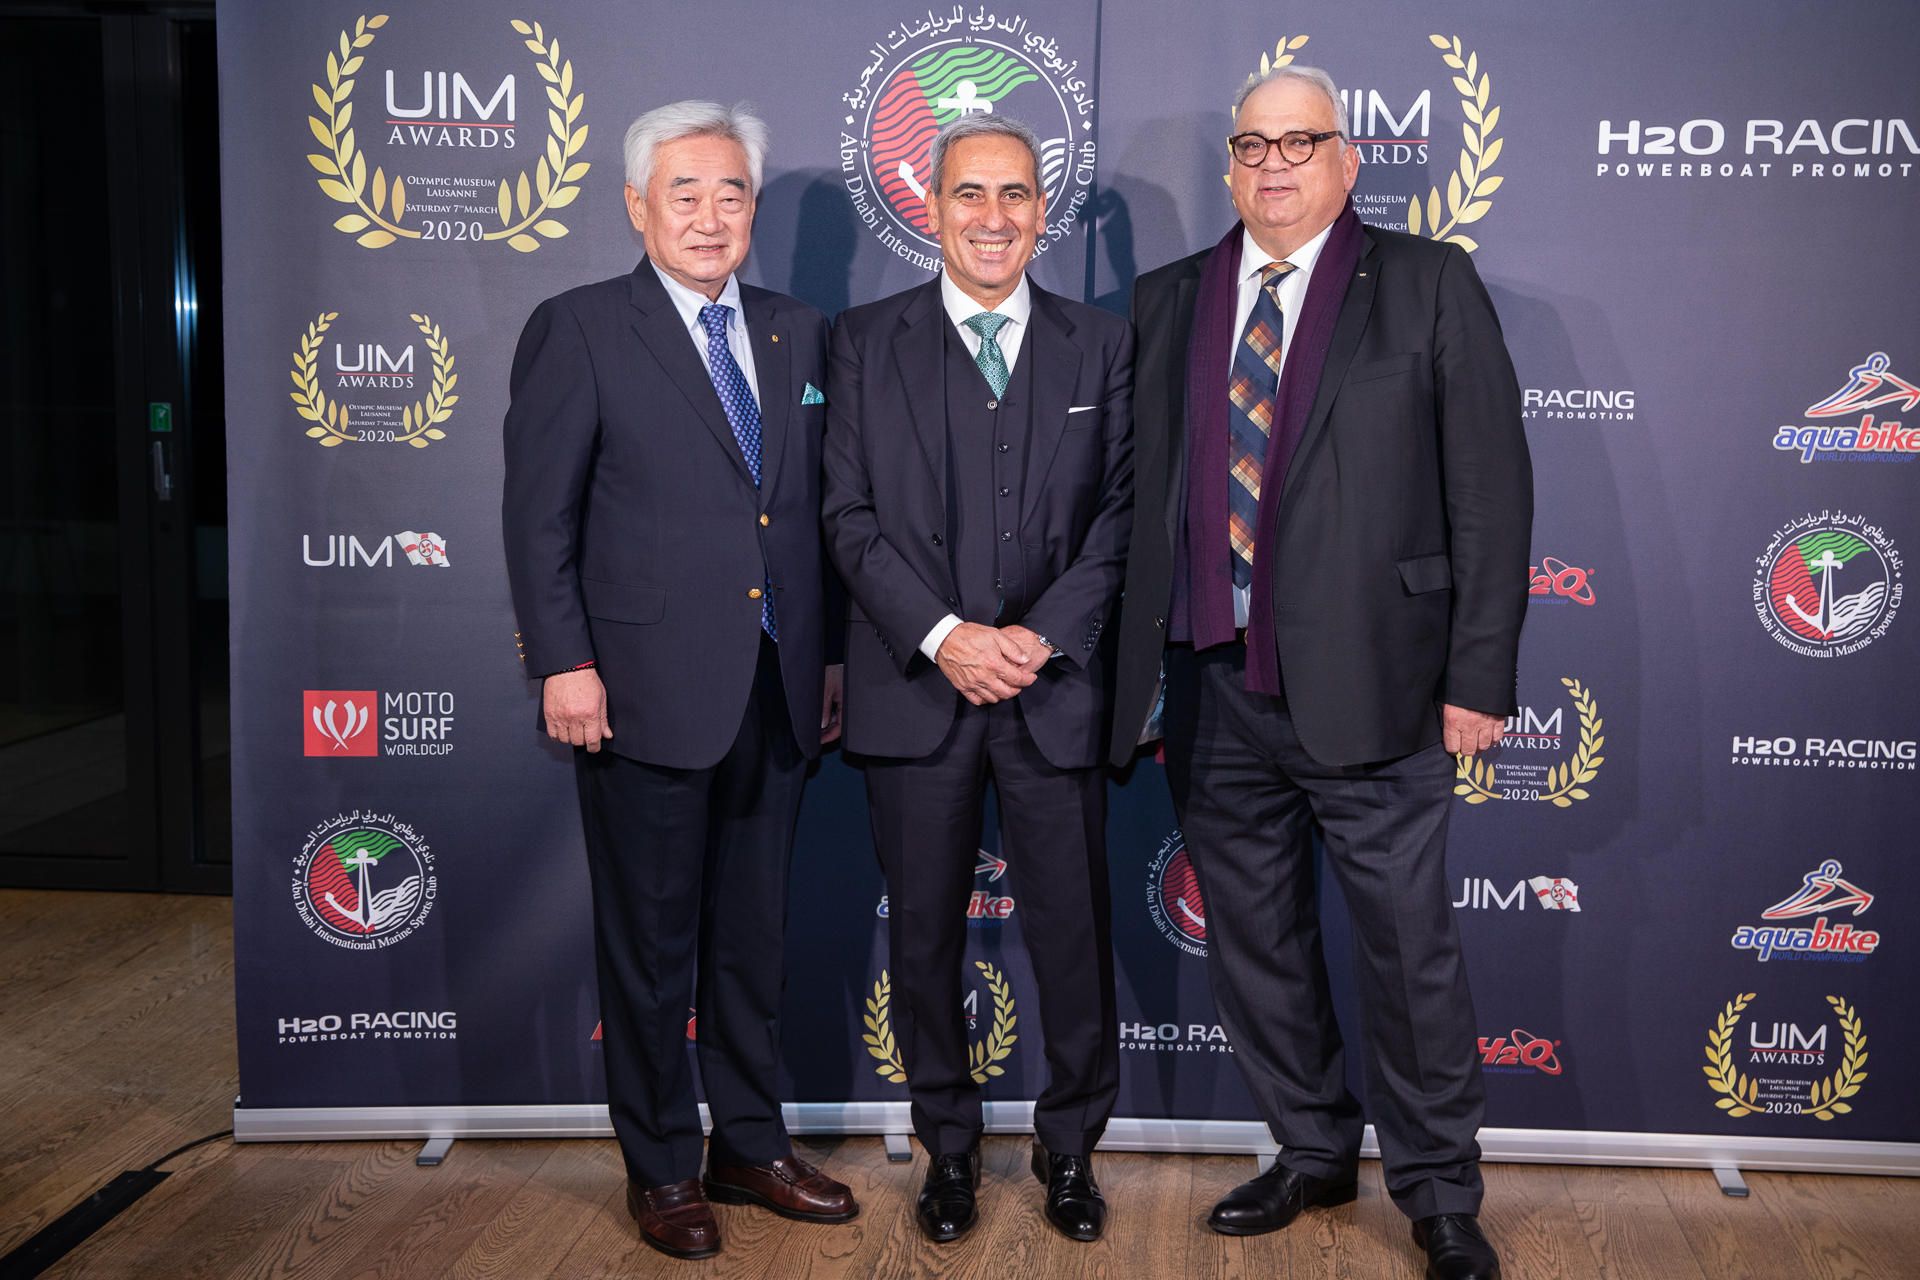 from left) Dr. Choue, Mr. Chiulli and Mr. Lalovic